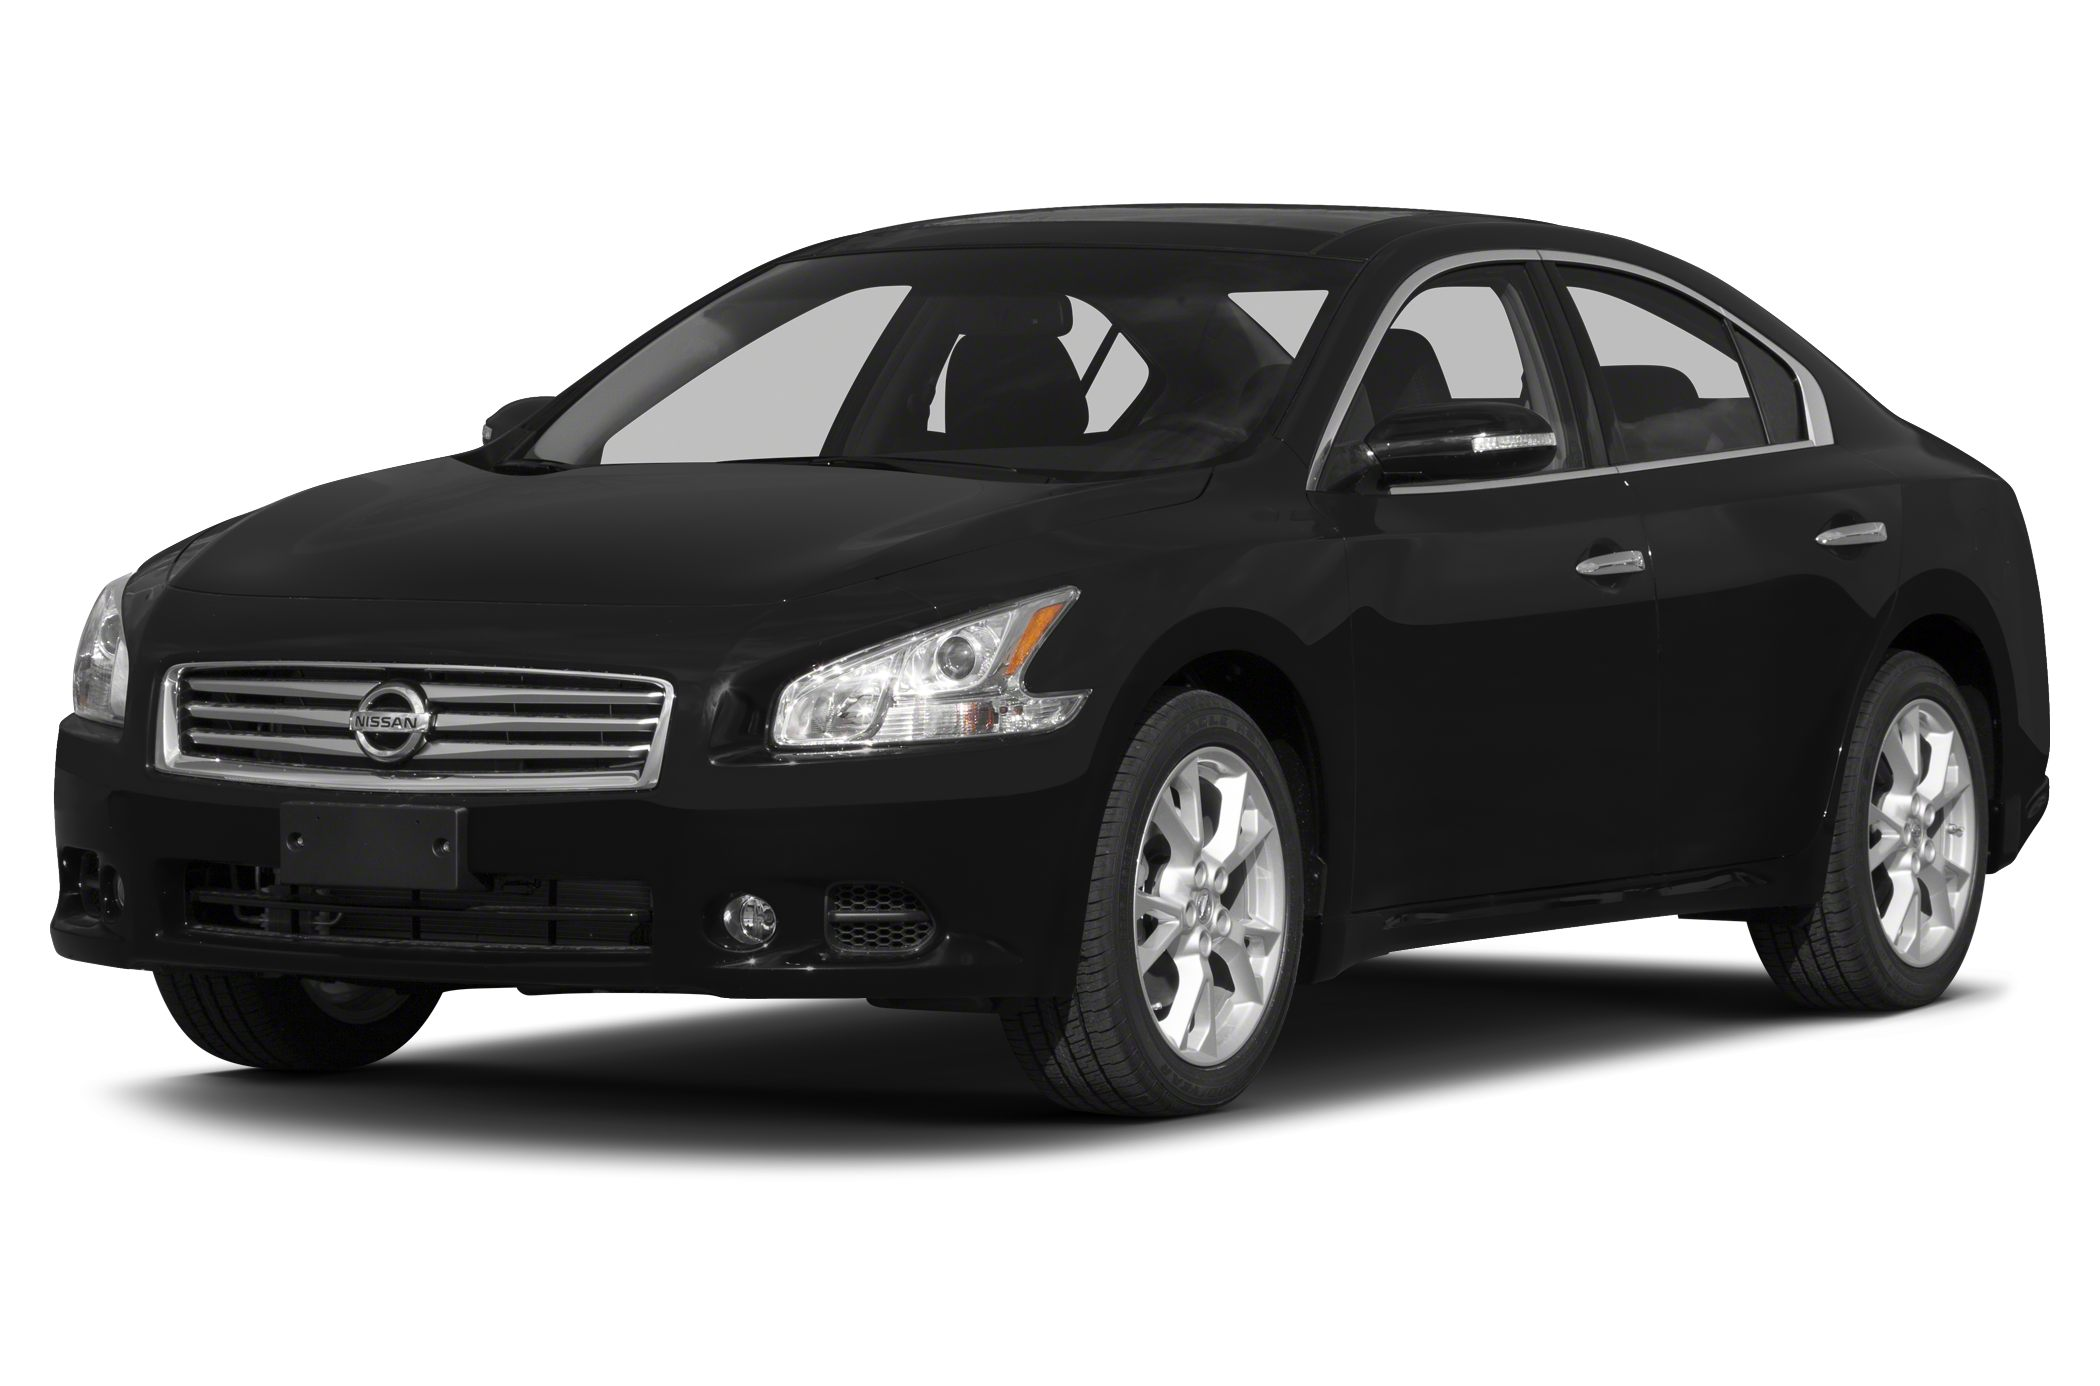 2013 Nissan Maxima S Sedan for sale in Philadelphia for $17,956 with 55,697 miles.